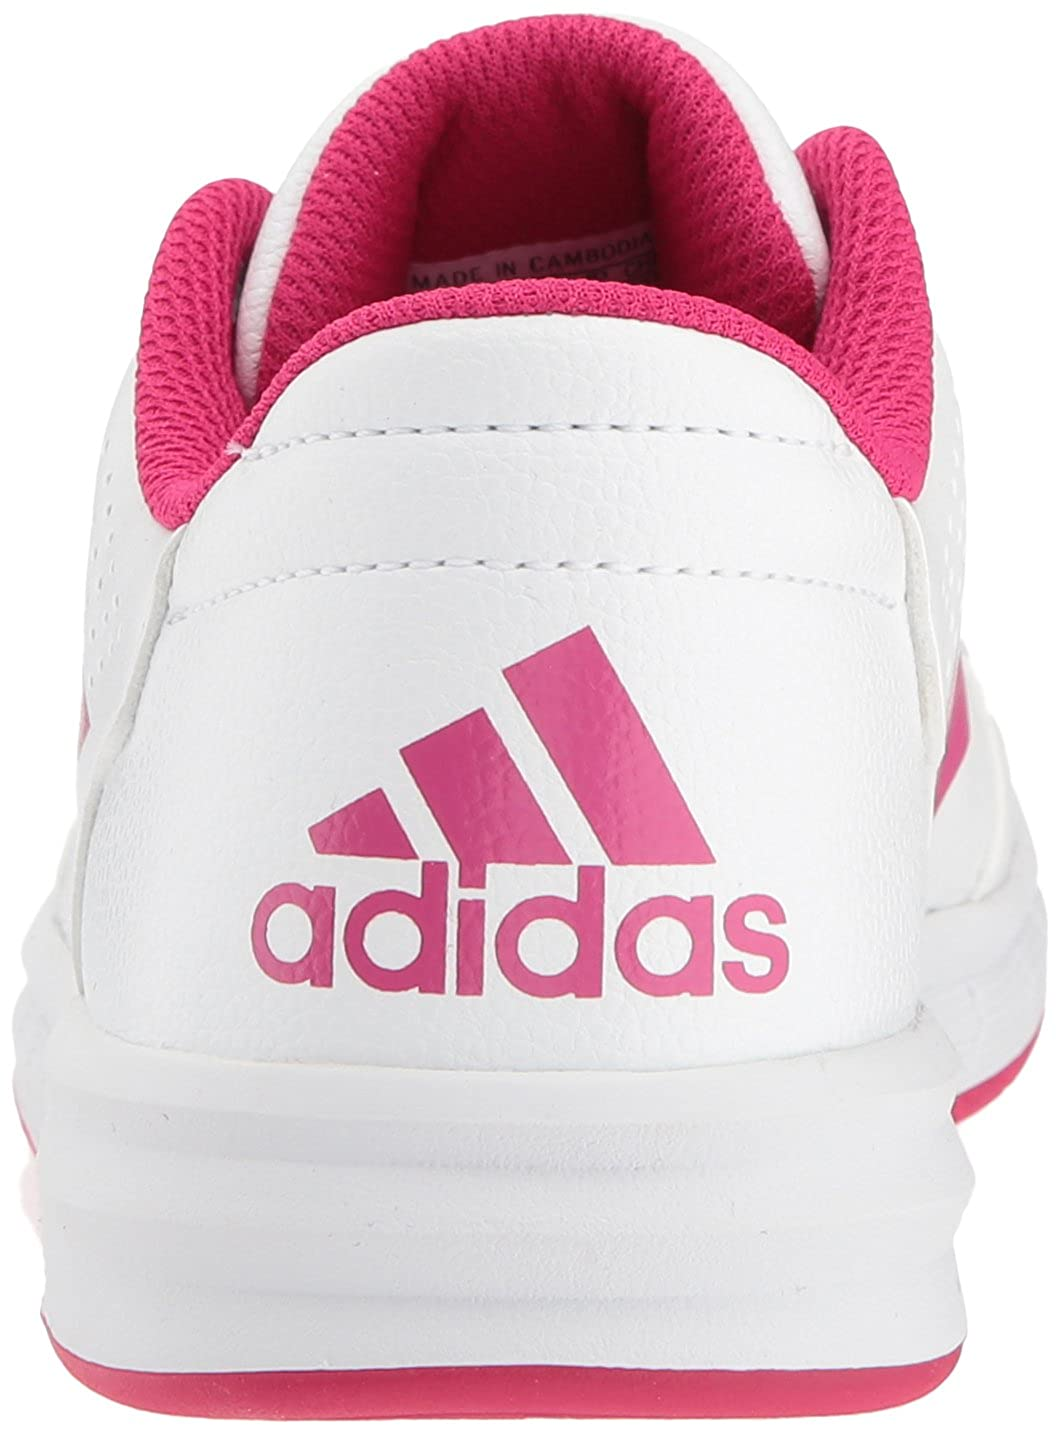 2.5 M US Little Kid adidas Originals Unisex-Kids Altasport Sneaker White//Bold Pink//White